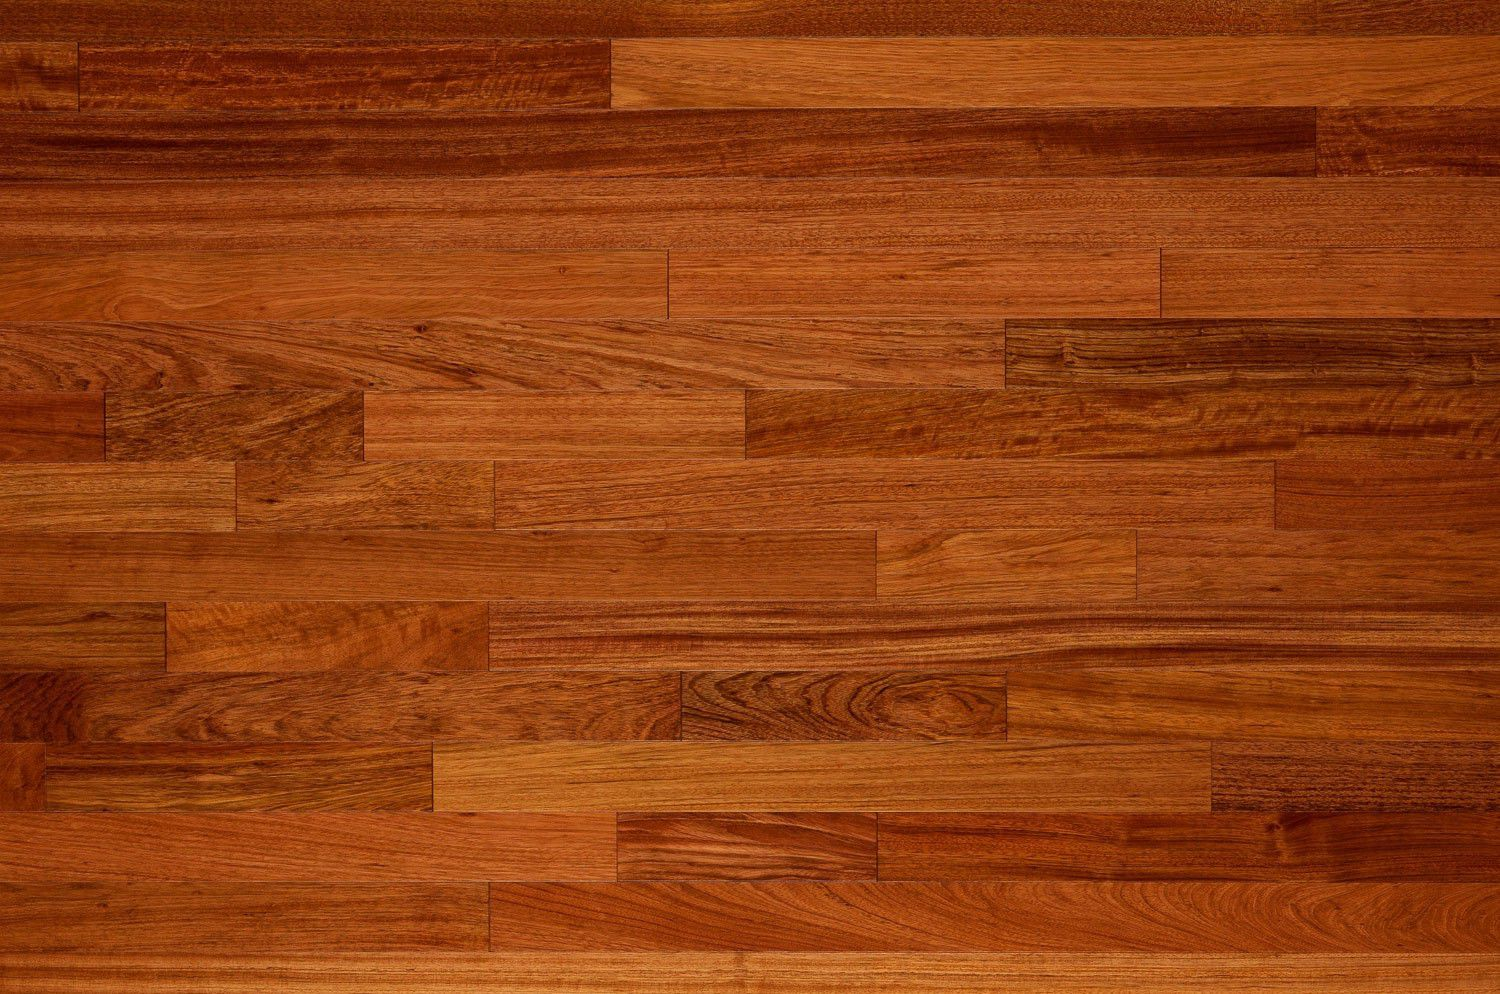 Light Hardwood Floor Texture: Cherry Wood Floor Texture